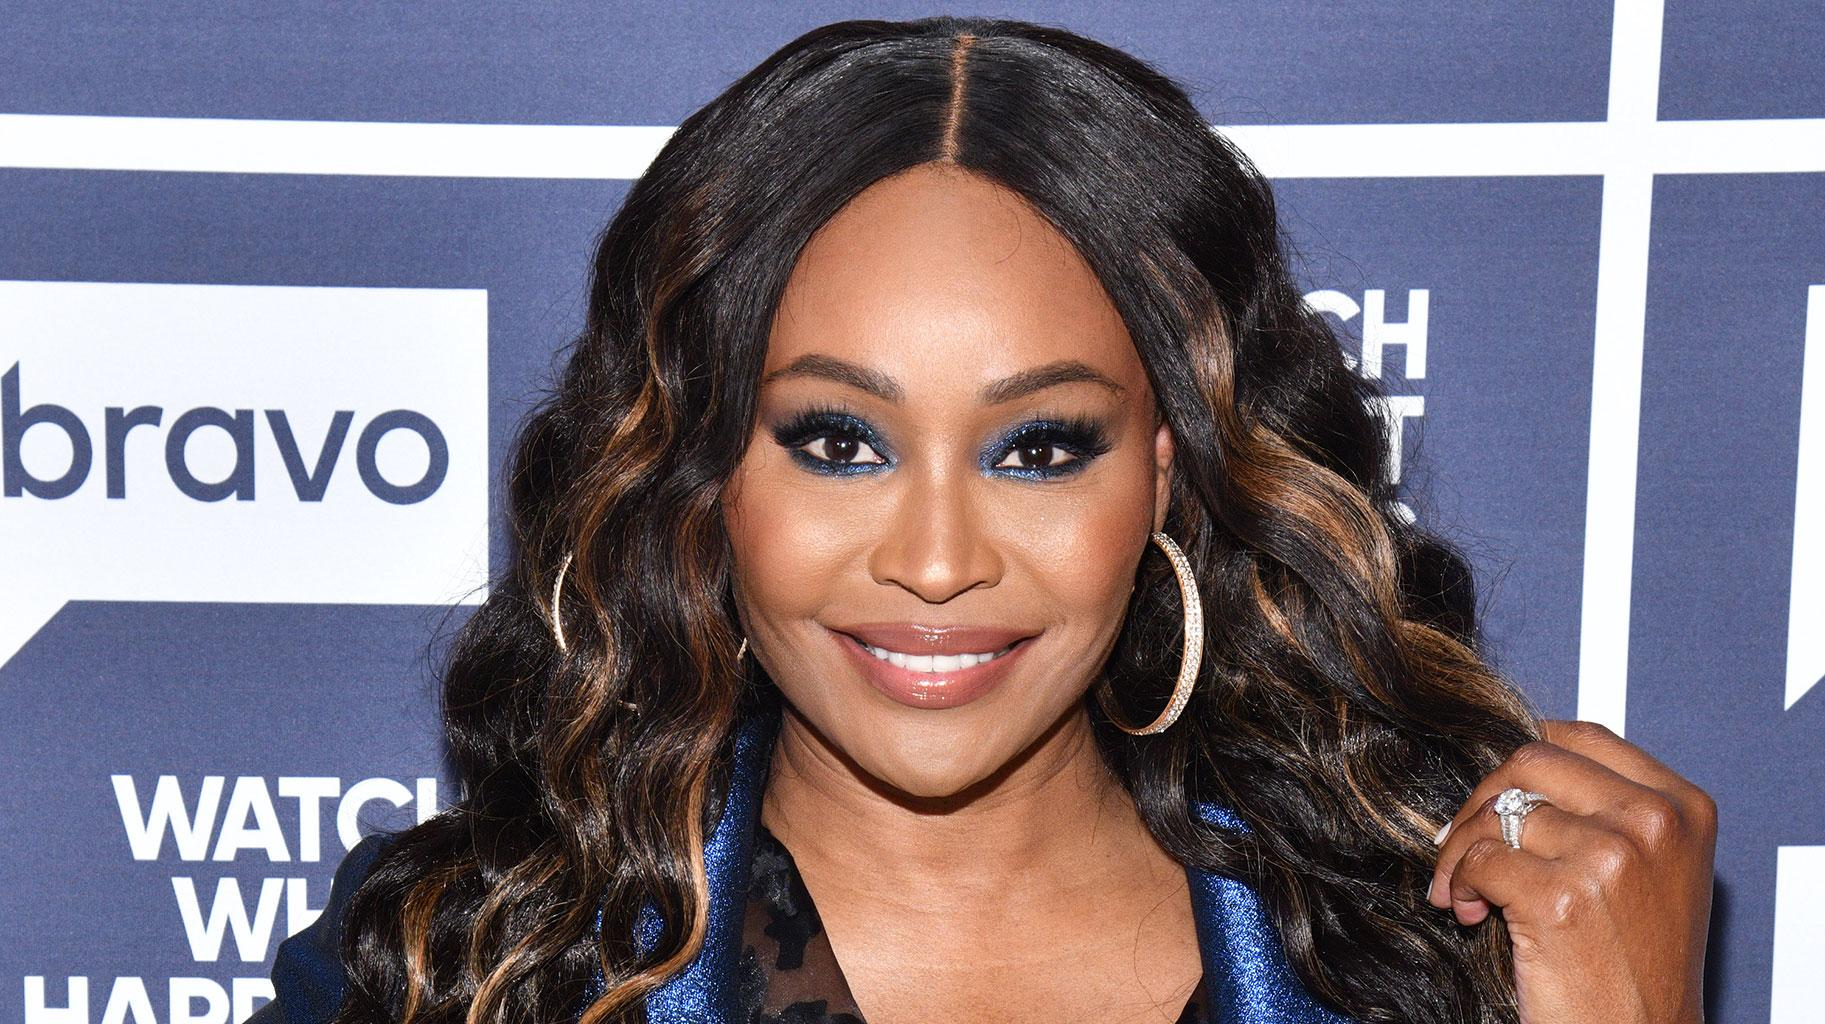 Cynthia Bailey Shares The 'Best Cellar Alert' With Her Fans - Read All The Details